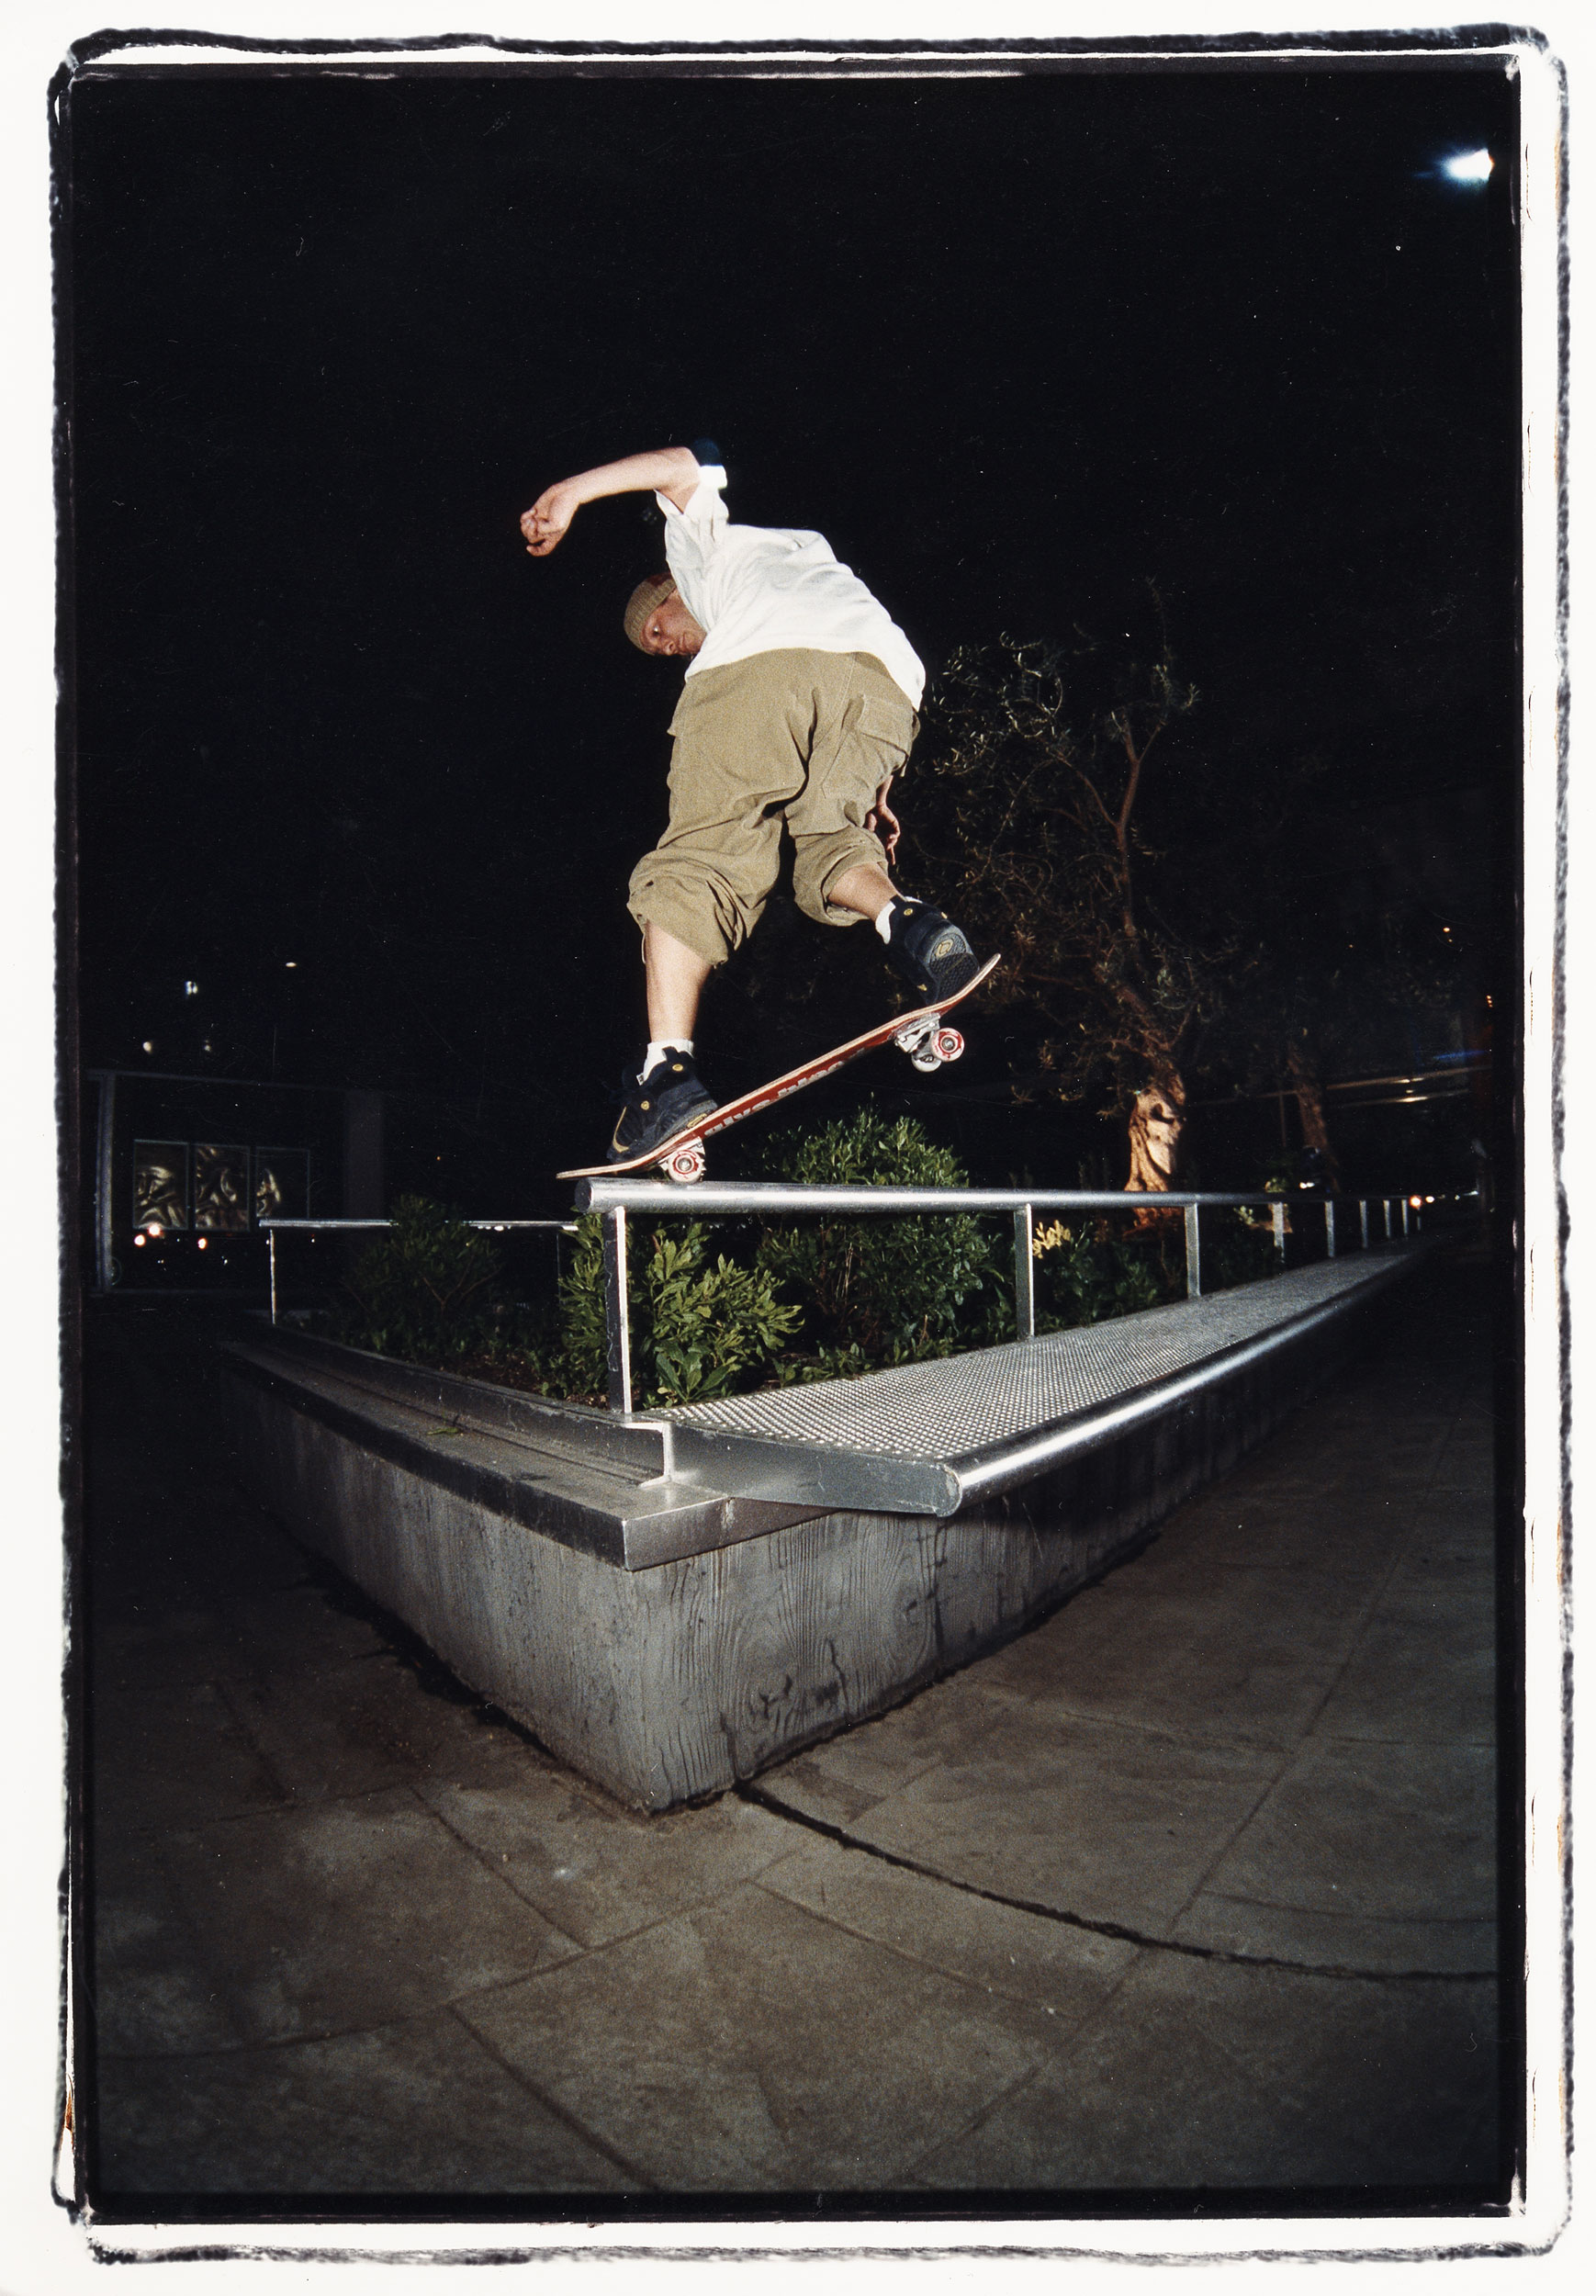 11_fs_crooks_les_corts_bcn_spain_ca_2003_ph_henrik_edelbo